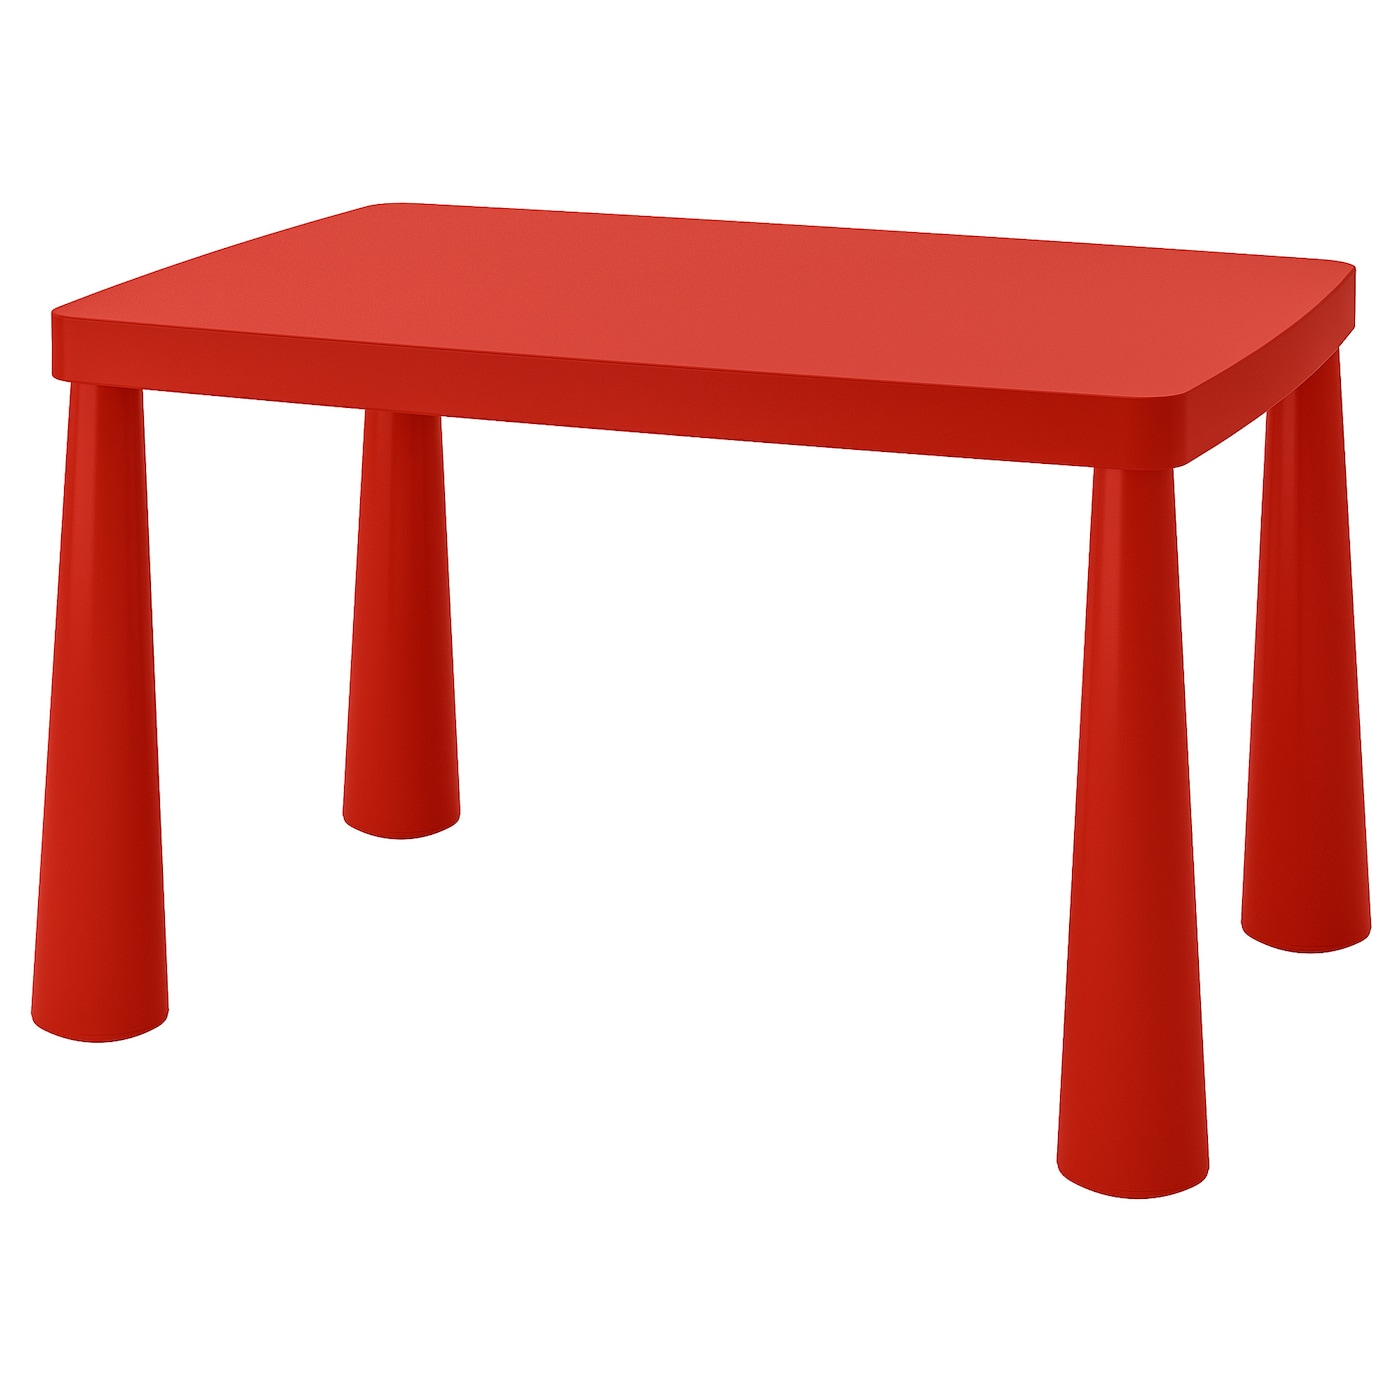 Mammut Children S Table Indoor Outdoor Red Ikea